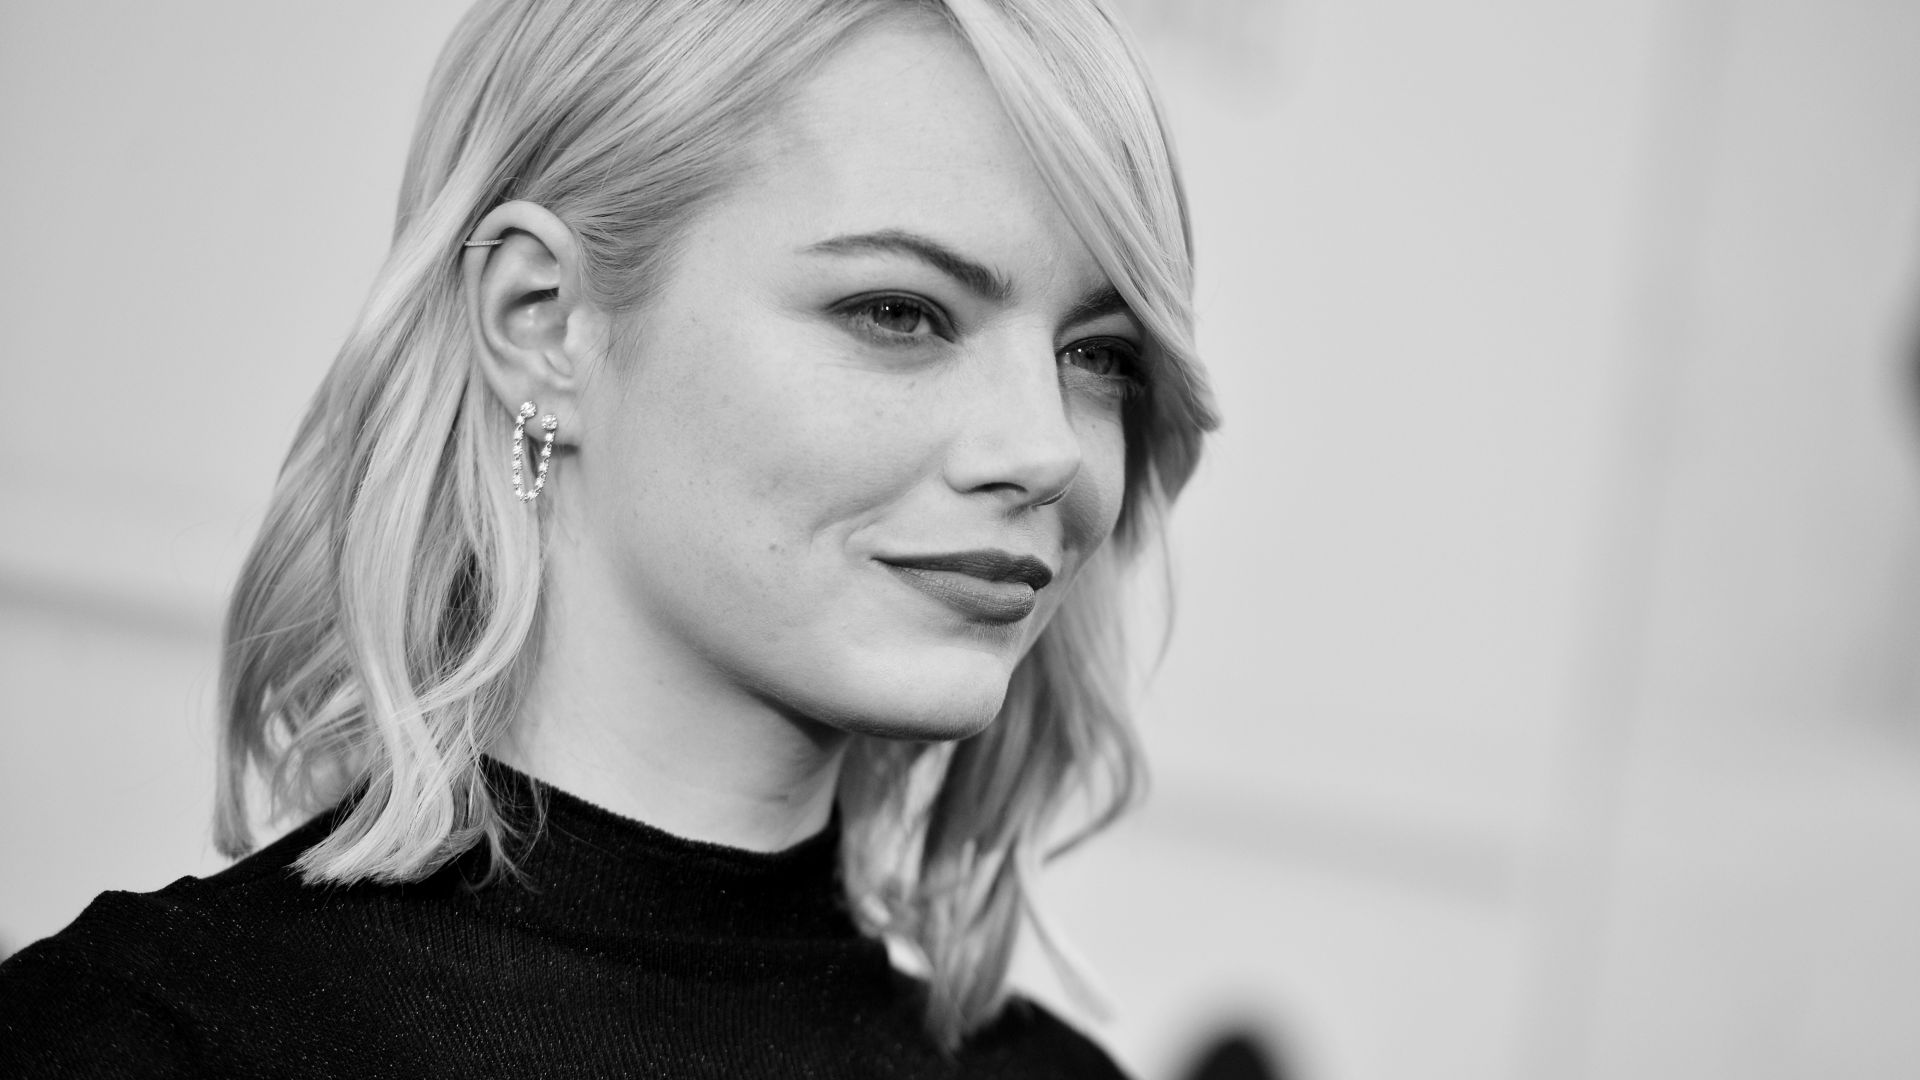 Emma Stone, Most Popular Celebs in 2015, actress